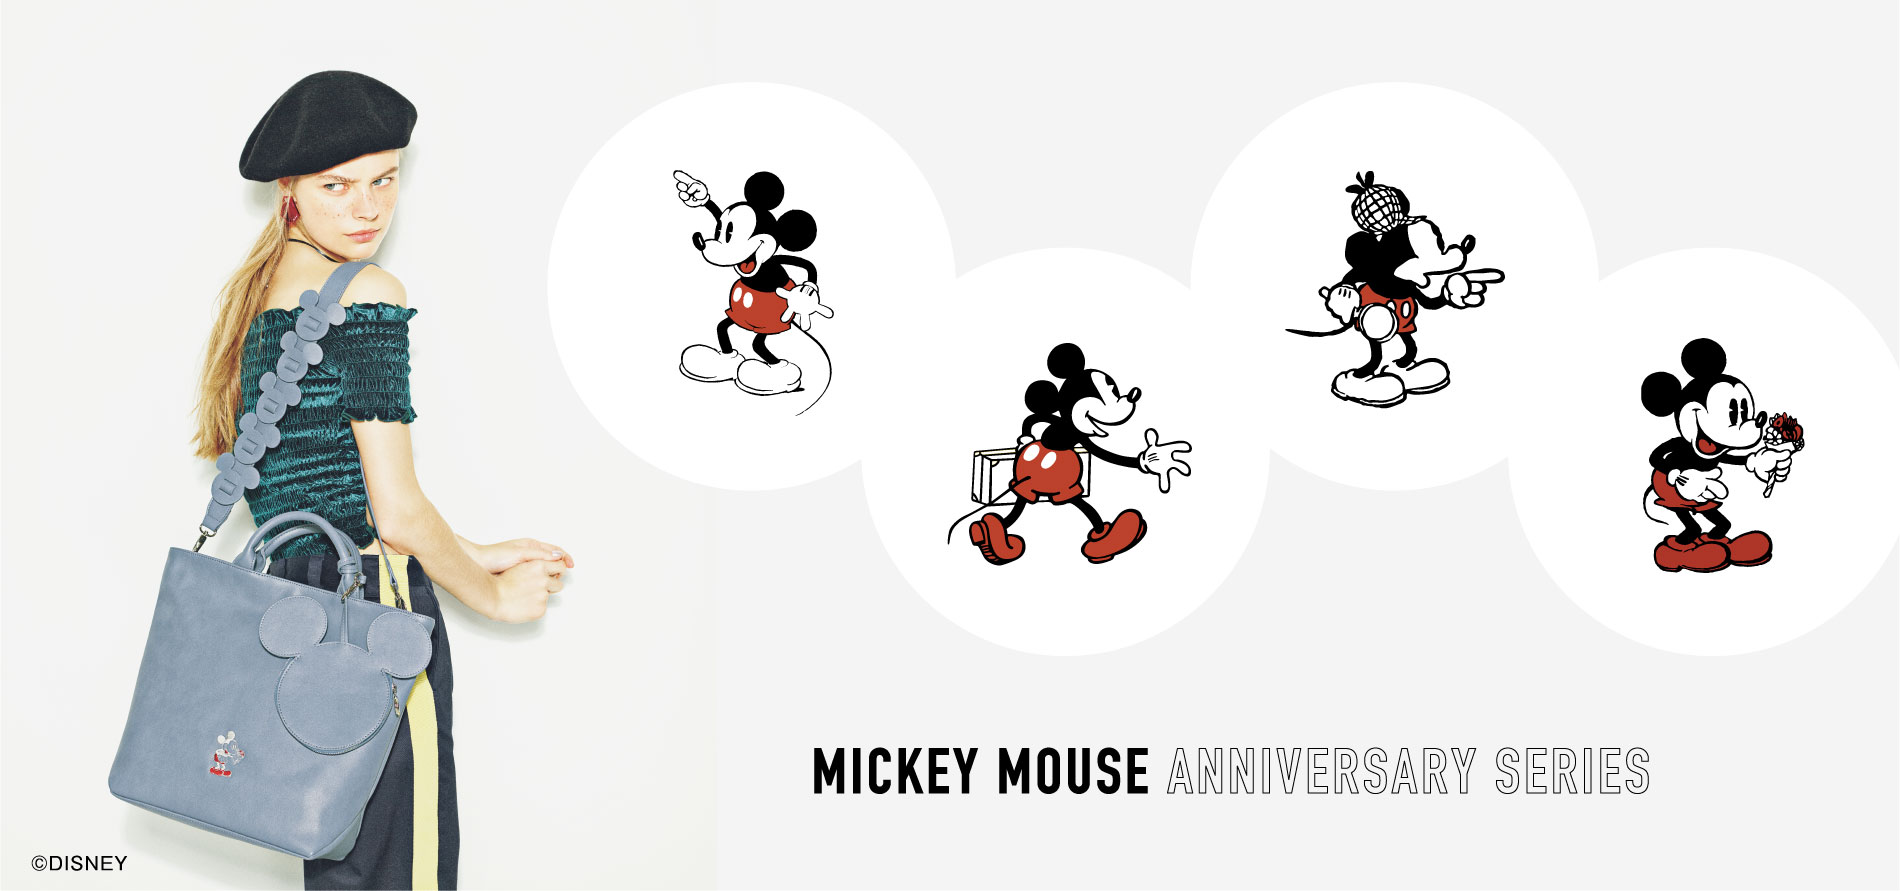 Mickey Mouse/anniversary